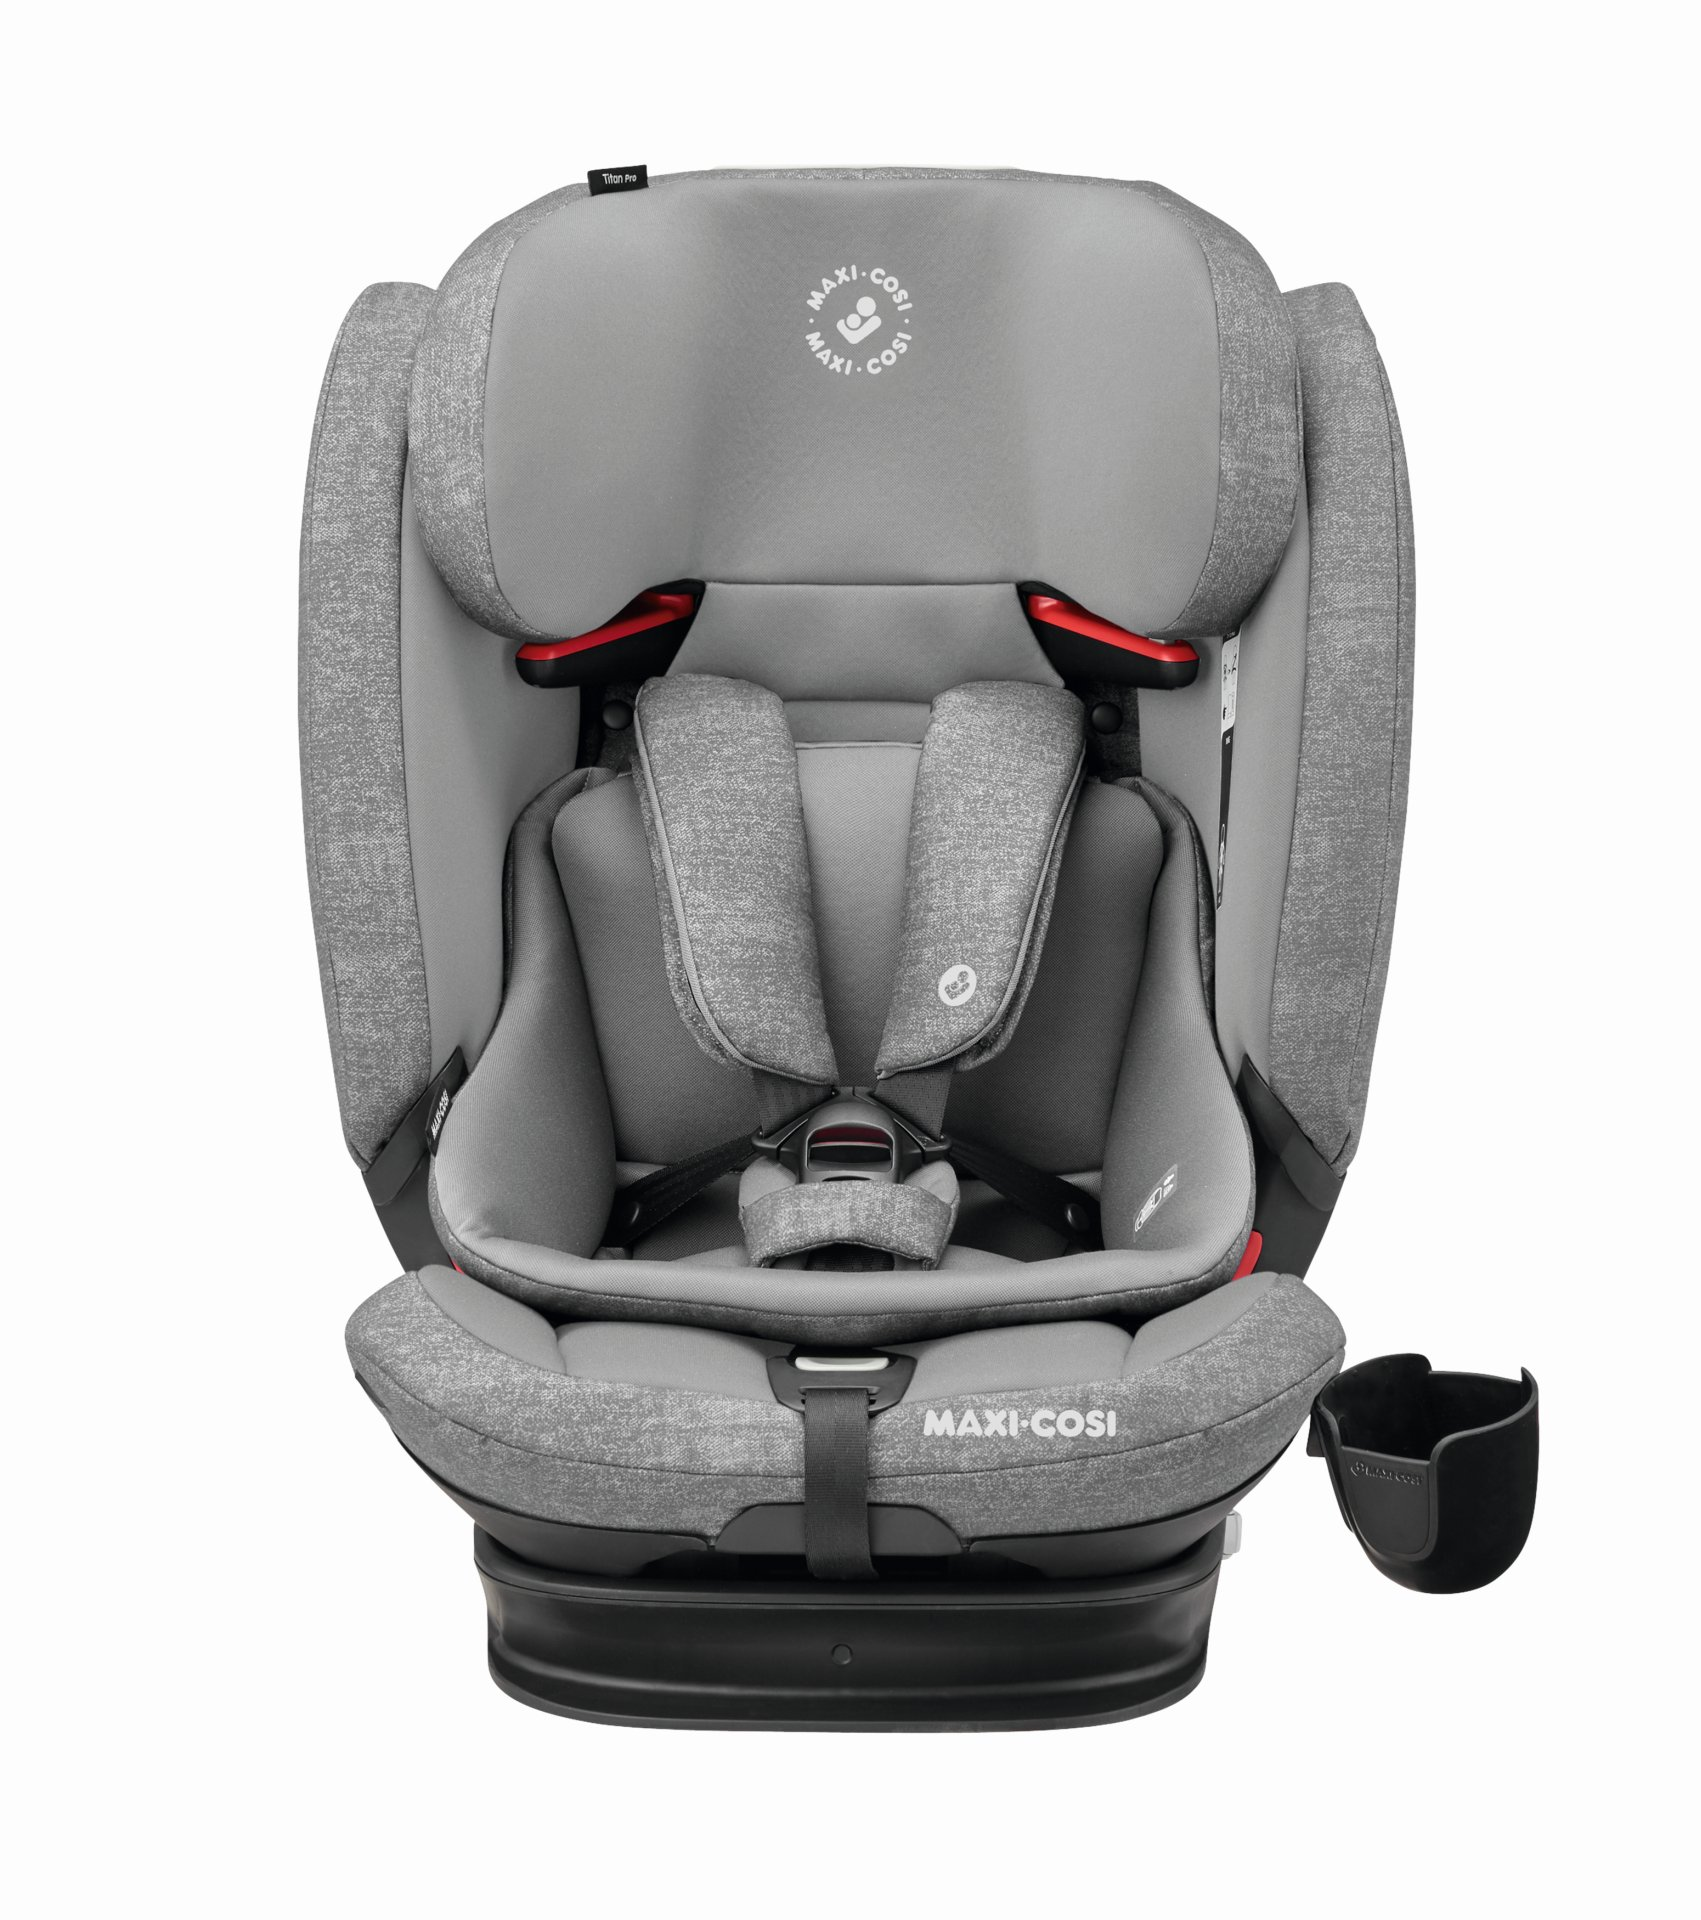 maxi cosi child car seat titan pro 2019 nomad grey buy. Black Bedroom Furniture Sets. Home Design Ideas